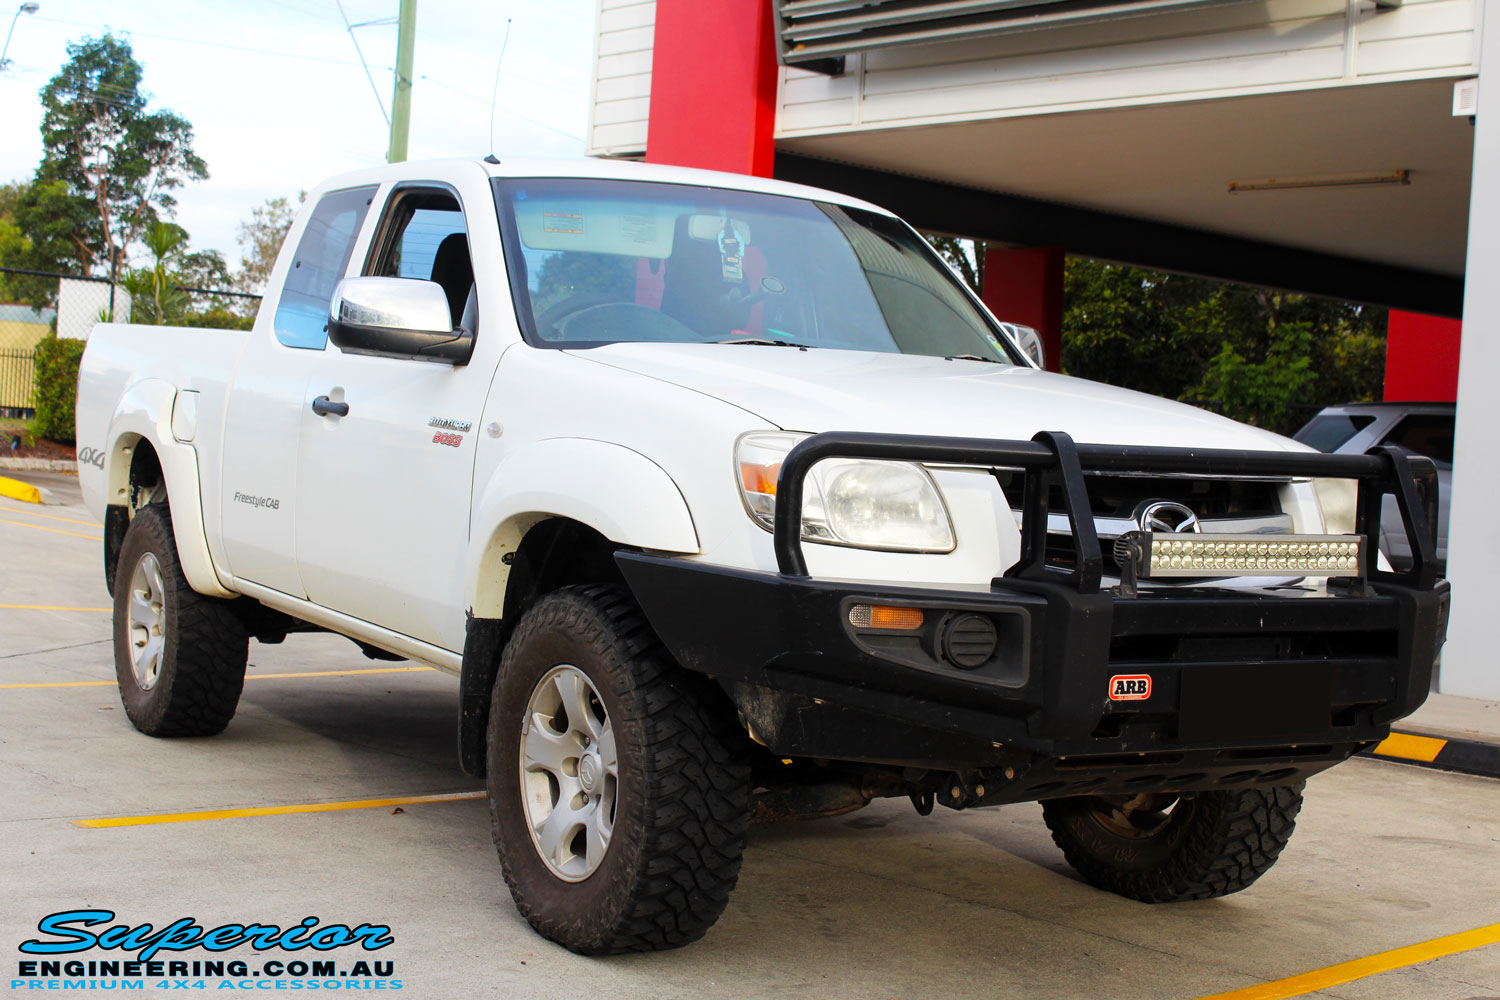 Right front side view of a White Mazda BT50 after fitment of a Bilstein 35mm Lift Kit